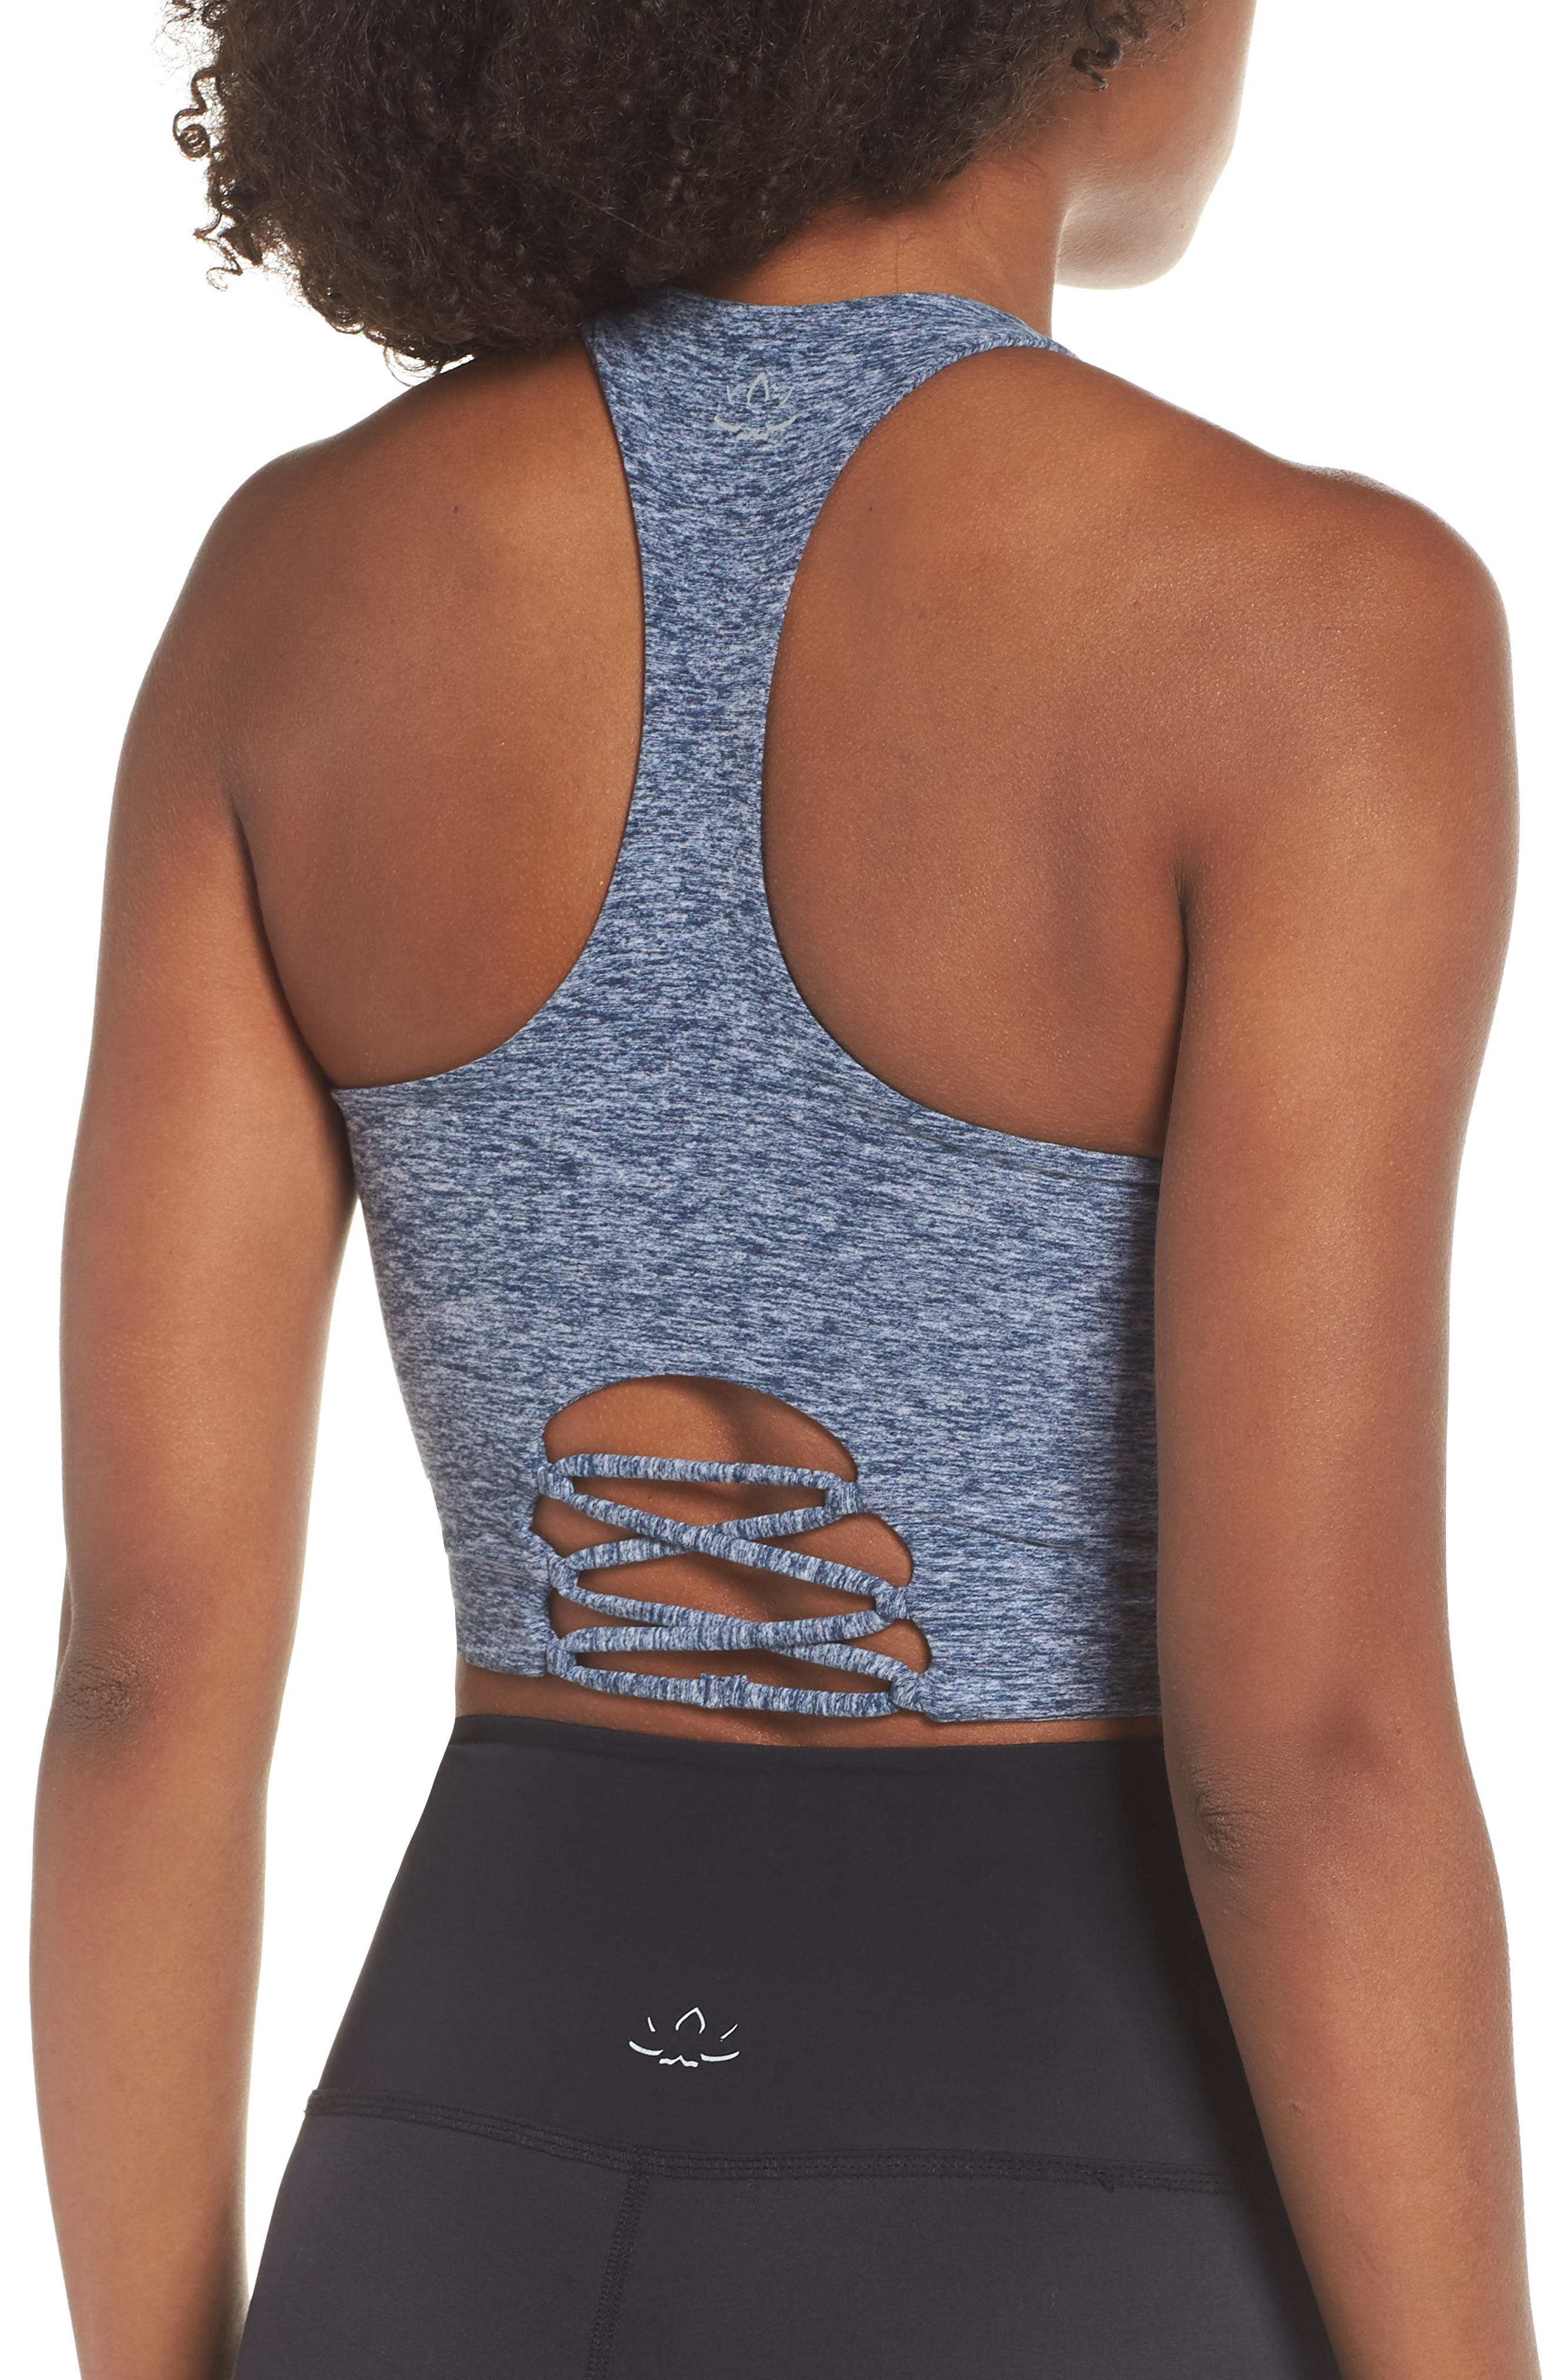 Across the Strap Cropped Top,                             Alternate thumbnail 2, color,                             WHITE/ OUTLAW NAVY